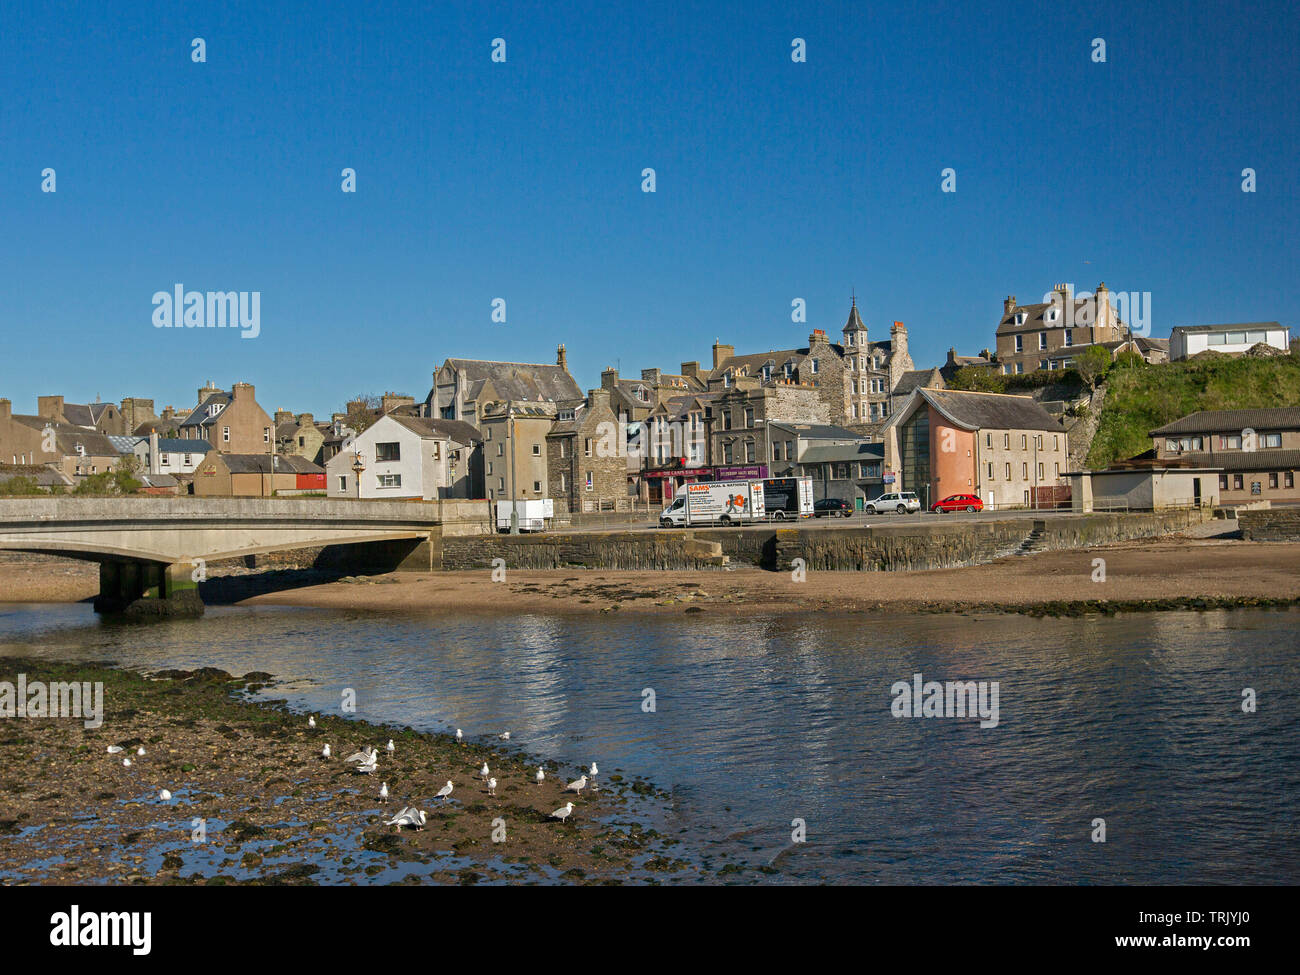 Town of Wick, Caithness Scotland with buildings huddled beside River Wick and arched bridge, with seagulls in foreground, under blue sky Stock Photo